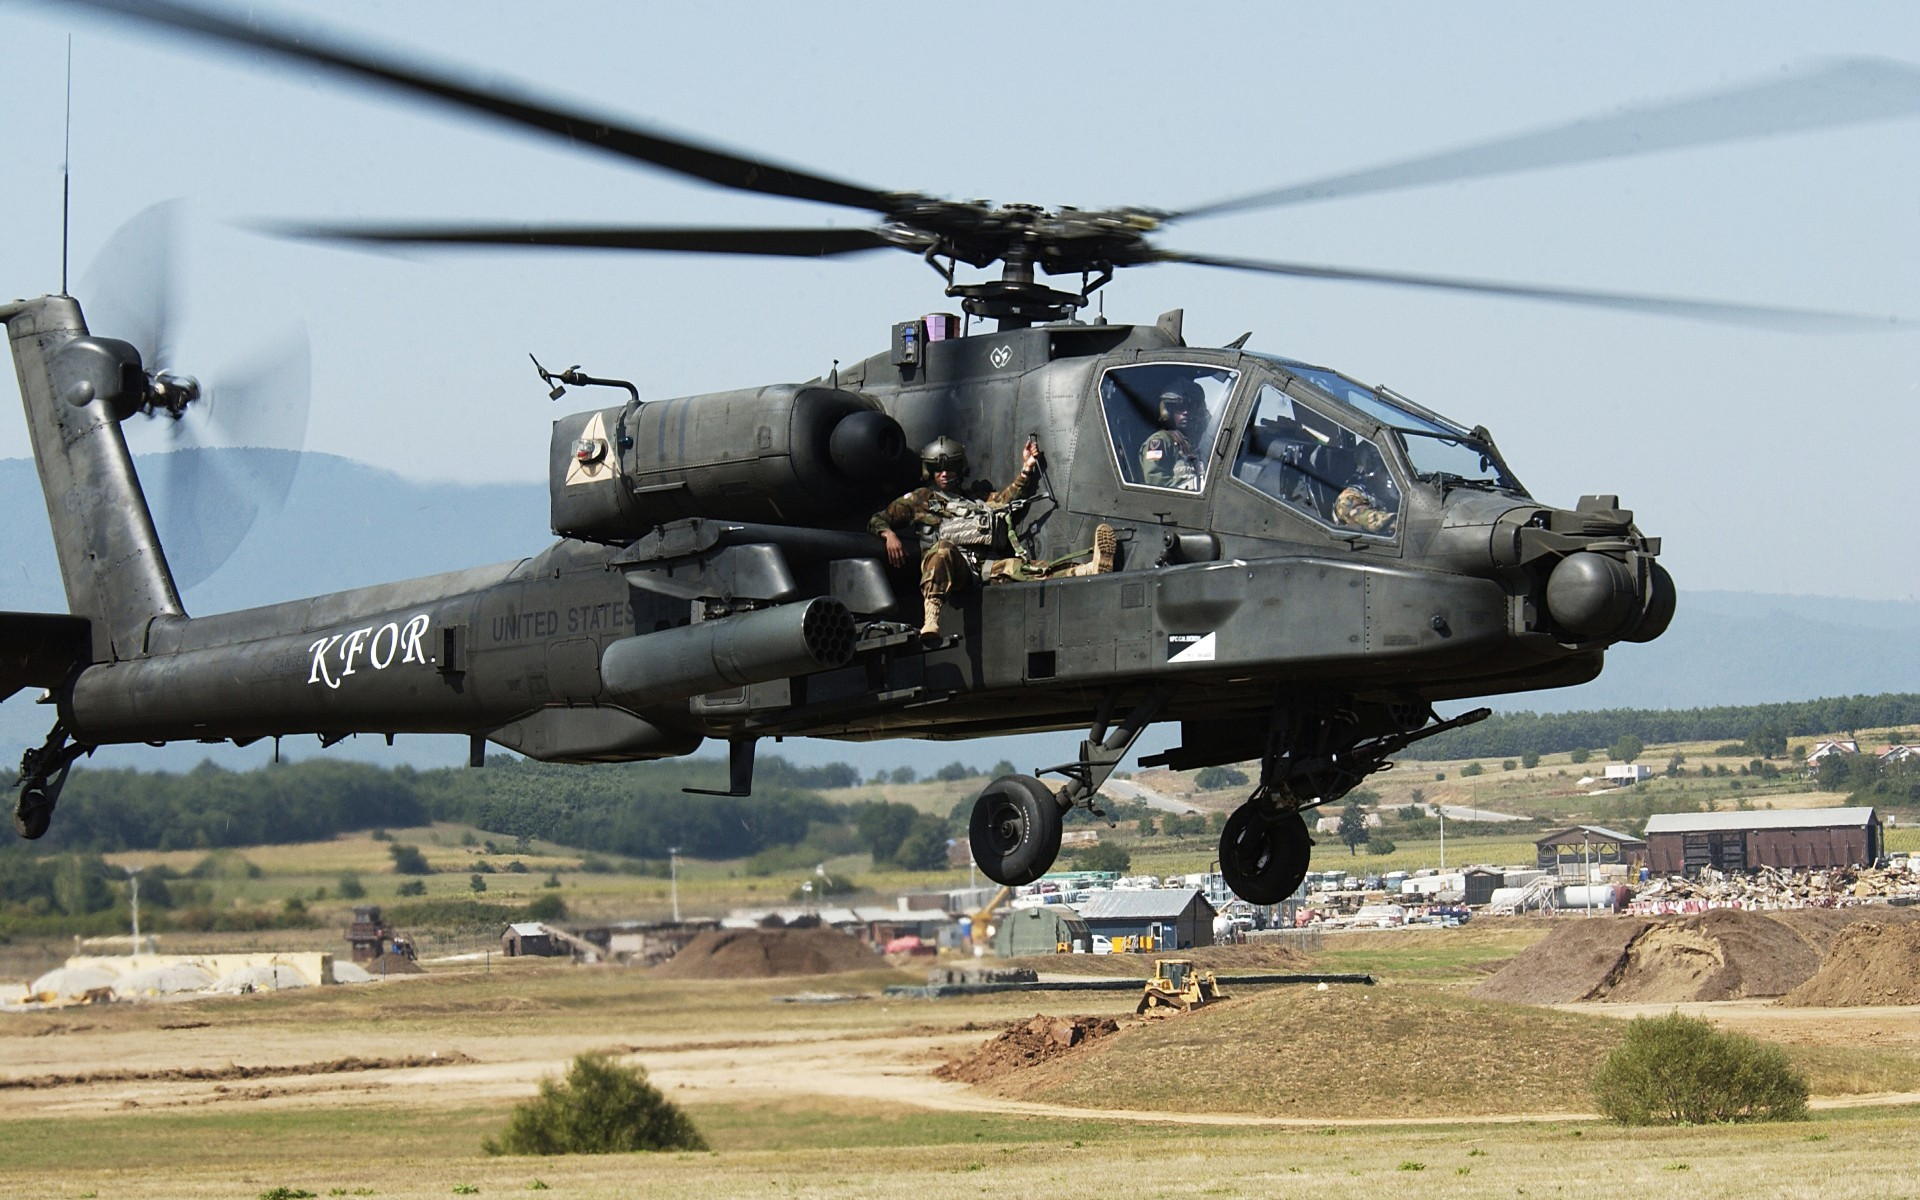 General 1920x1200 Boeing AH-64 Apache AH-64 Apache army military aircraft aircraft vehicle military vehicle soldier military attack helicopters